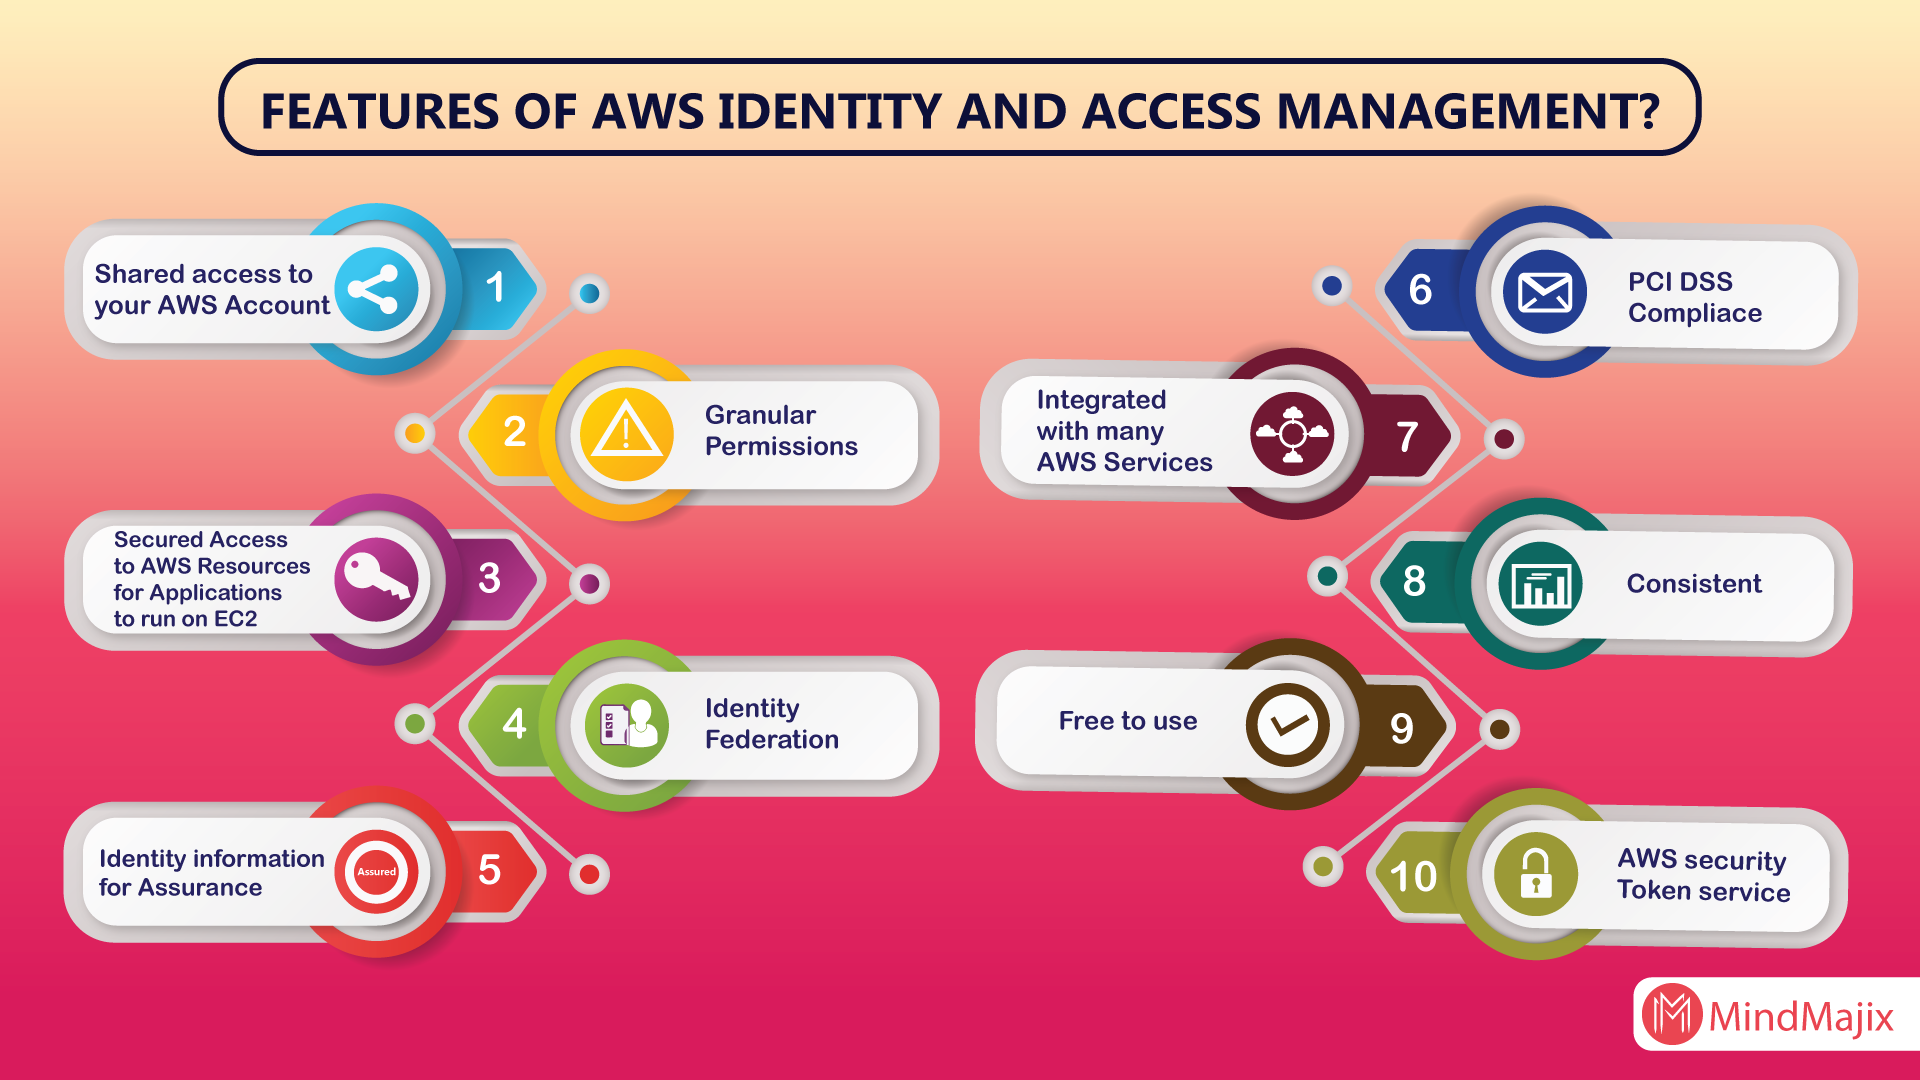 Features of AWS IAM